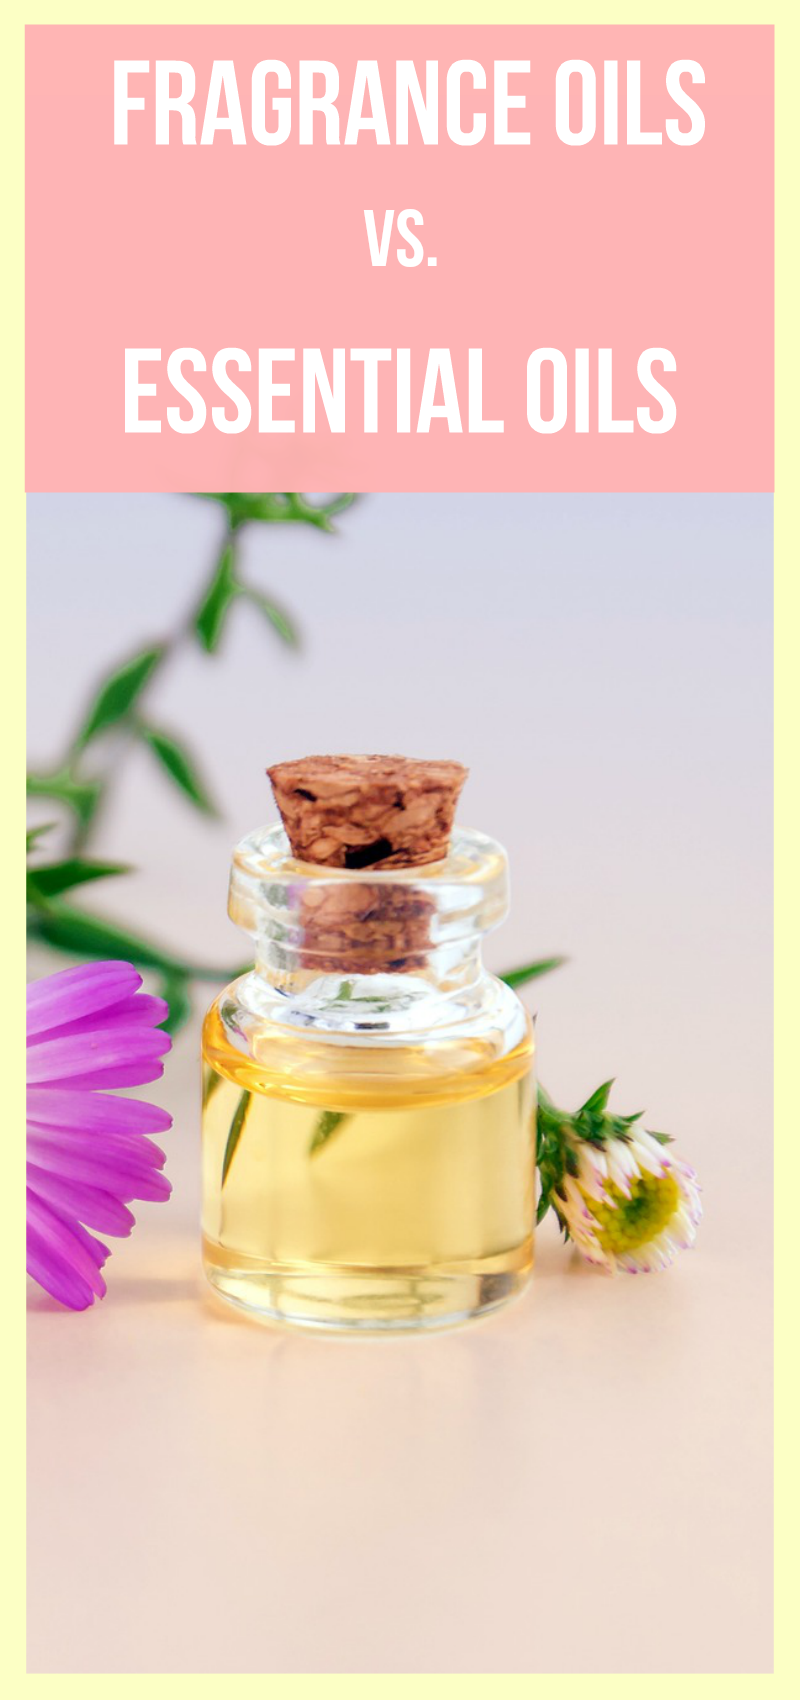 Fragrance oil vs essential oil, what are the benefits and drawbacks of each? What can they be used for and how useful they can be for your needs. #aromatherapy #essentialoils